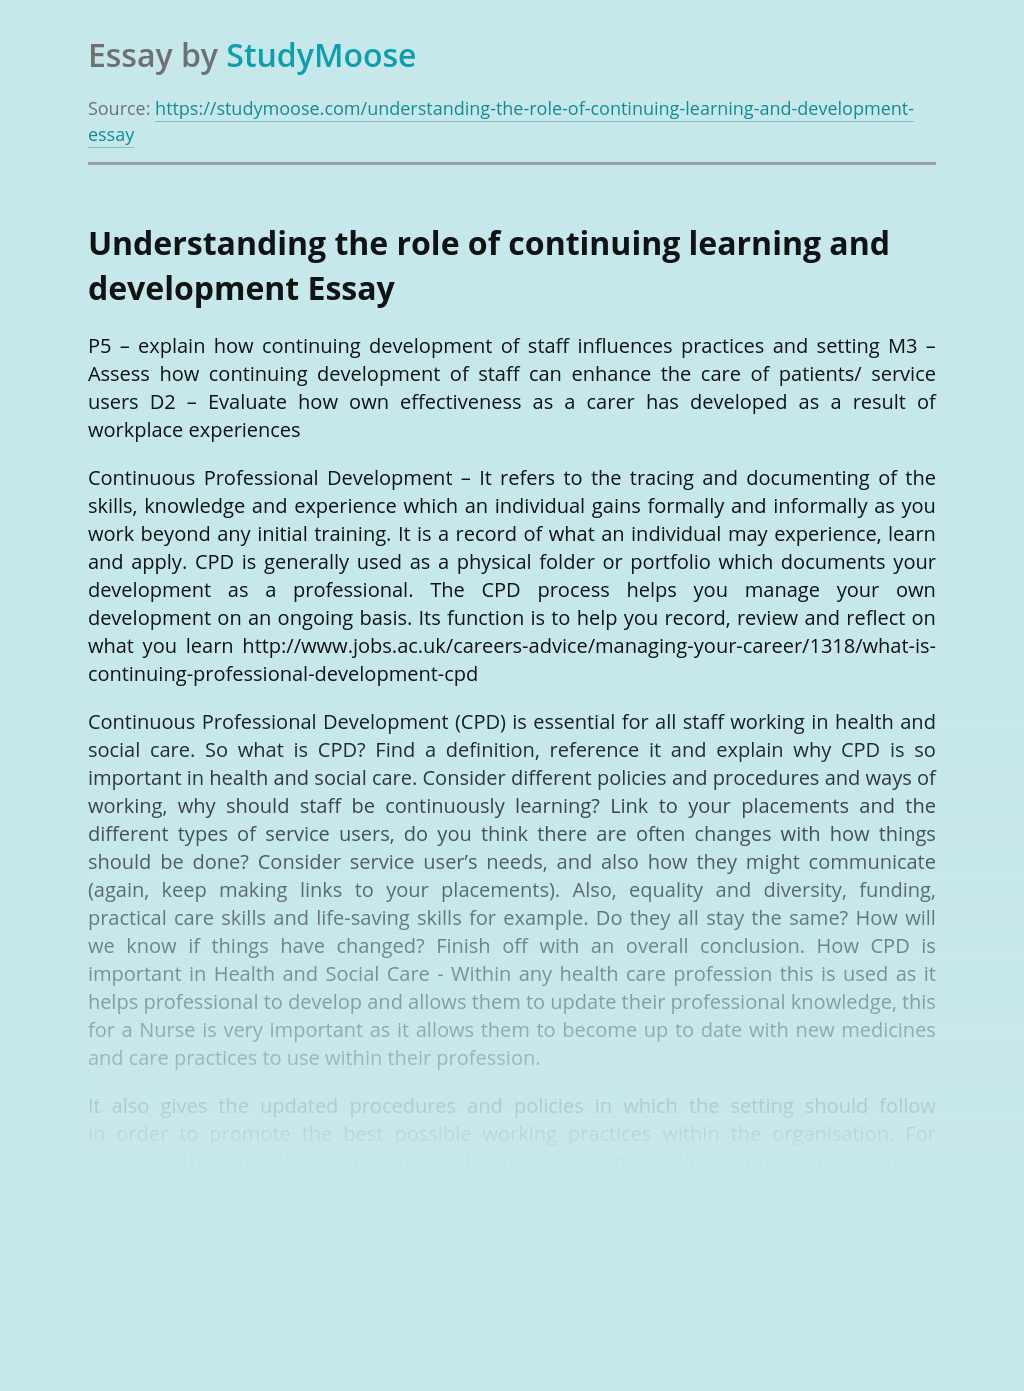 Understanding the role of continuing learning and development